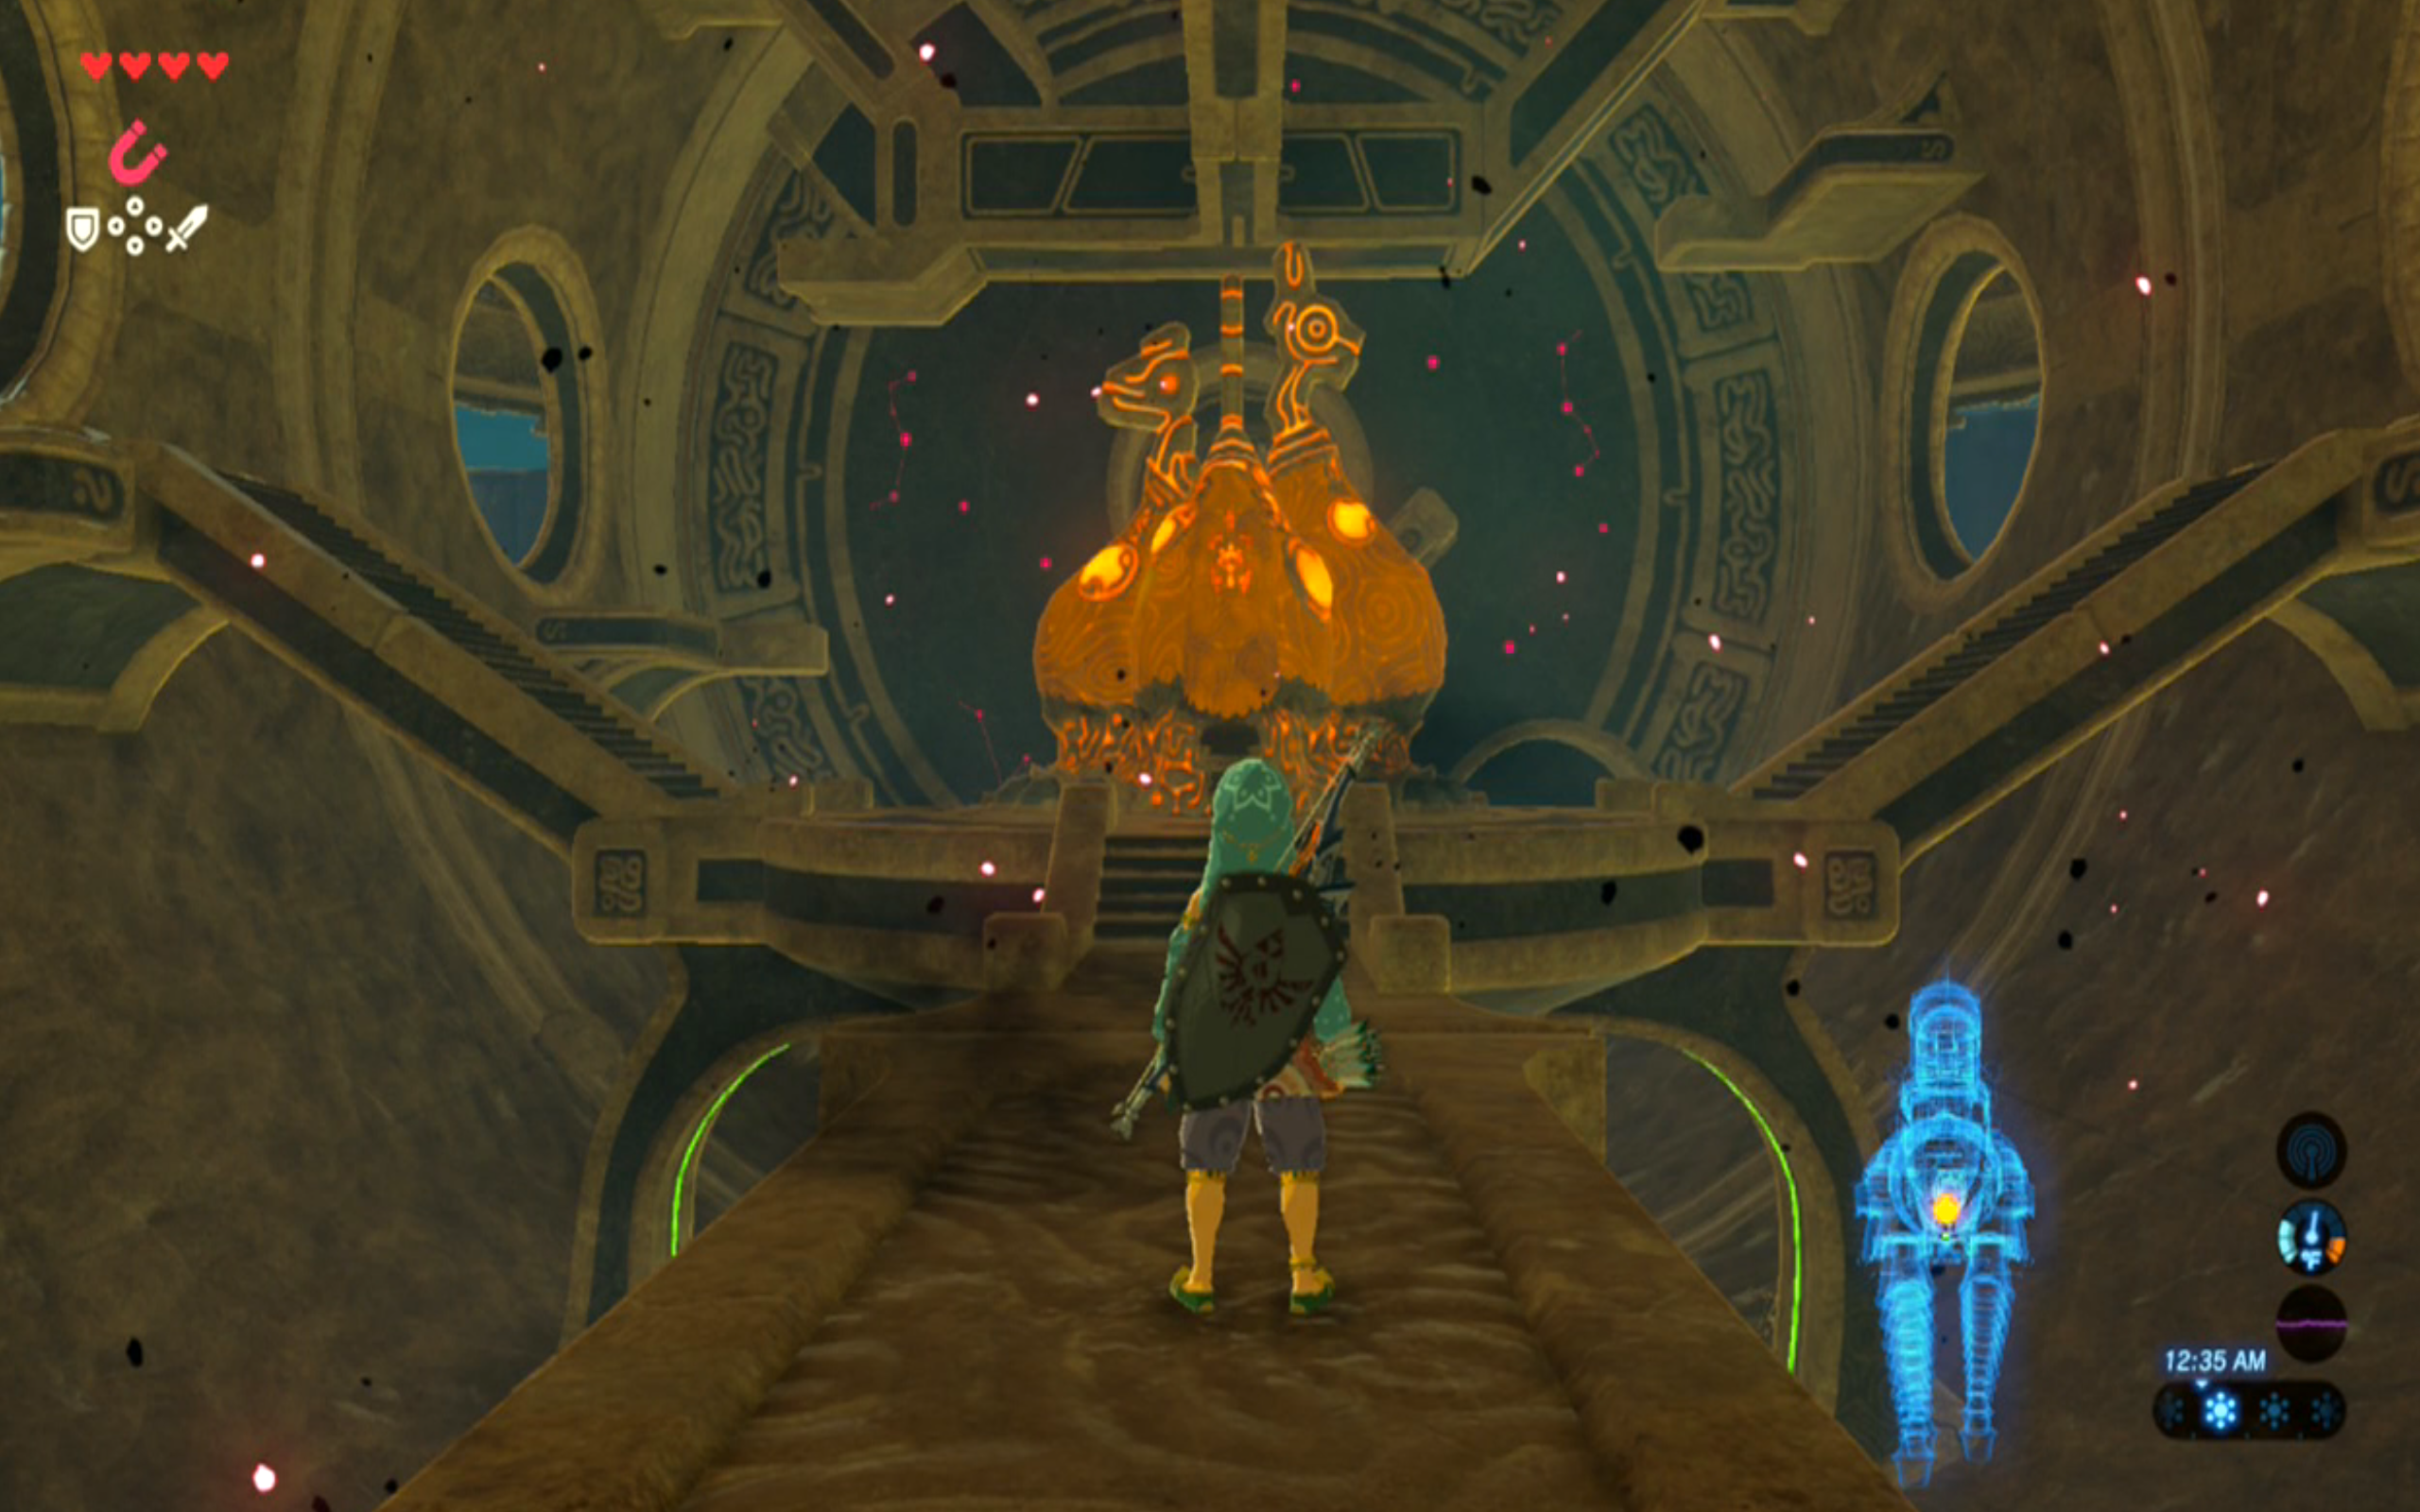 The Legend of Zelda: Breath of the Wild Review - Just Push Start